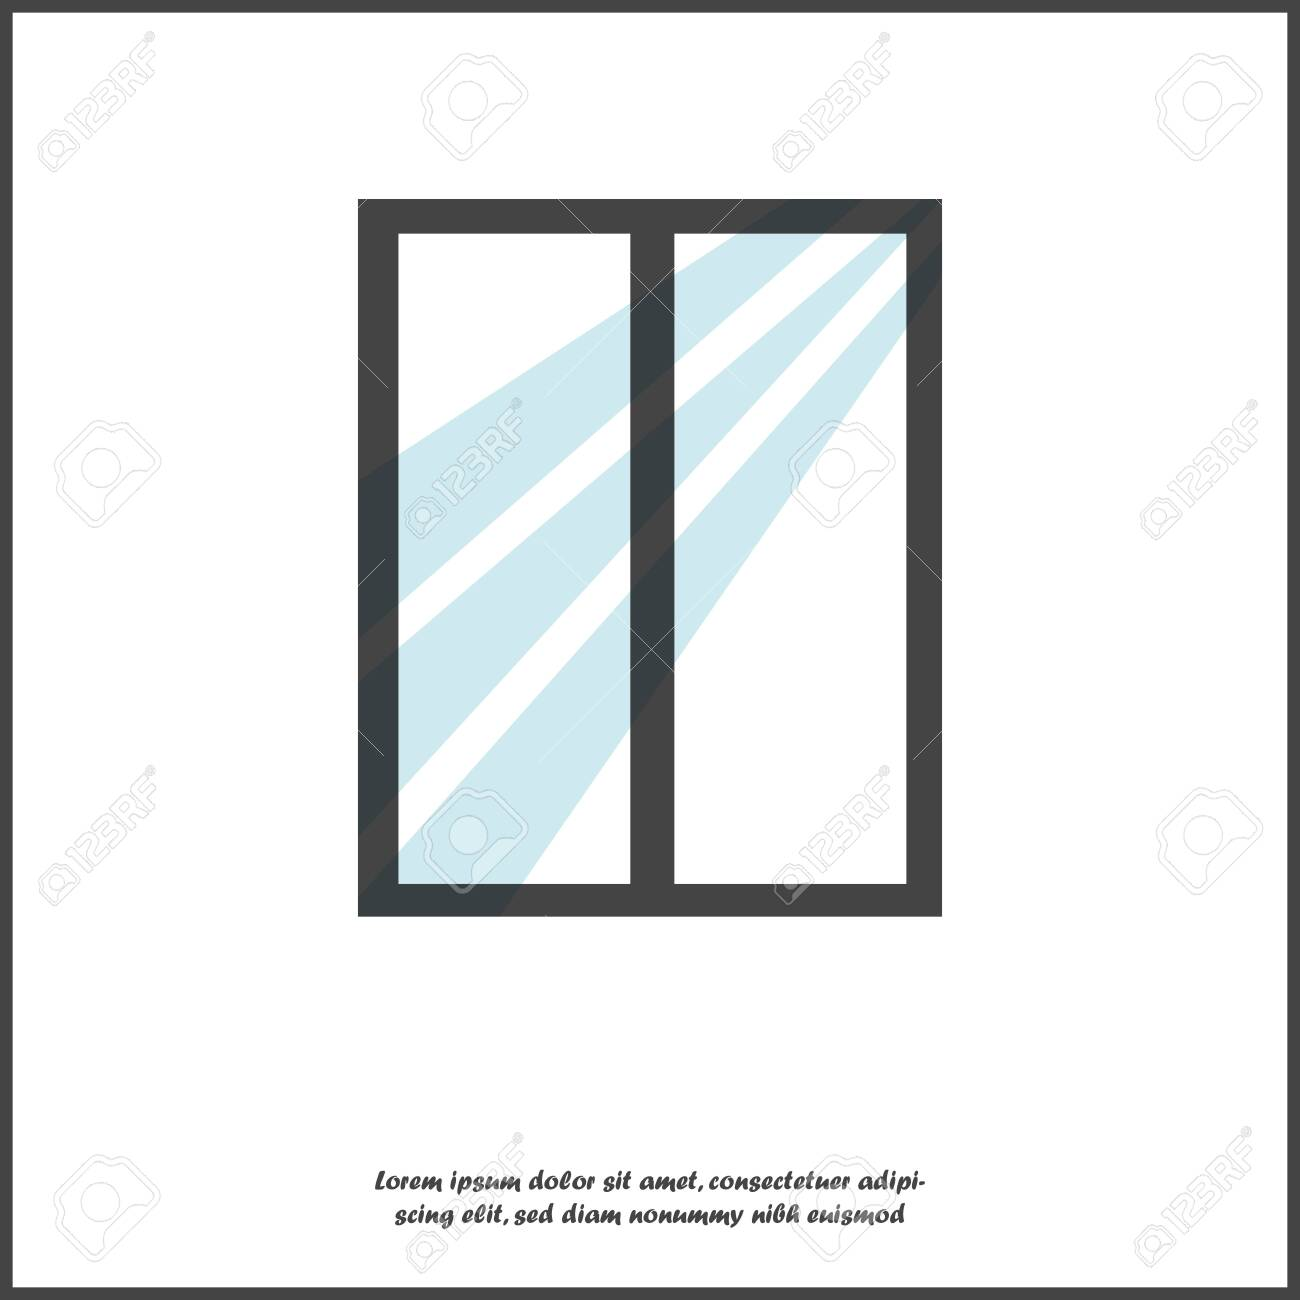 Window vector illustration on white isolated background. Layers grouped for easy editing illustration. For your design. - 120667155